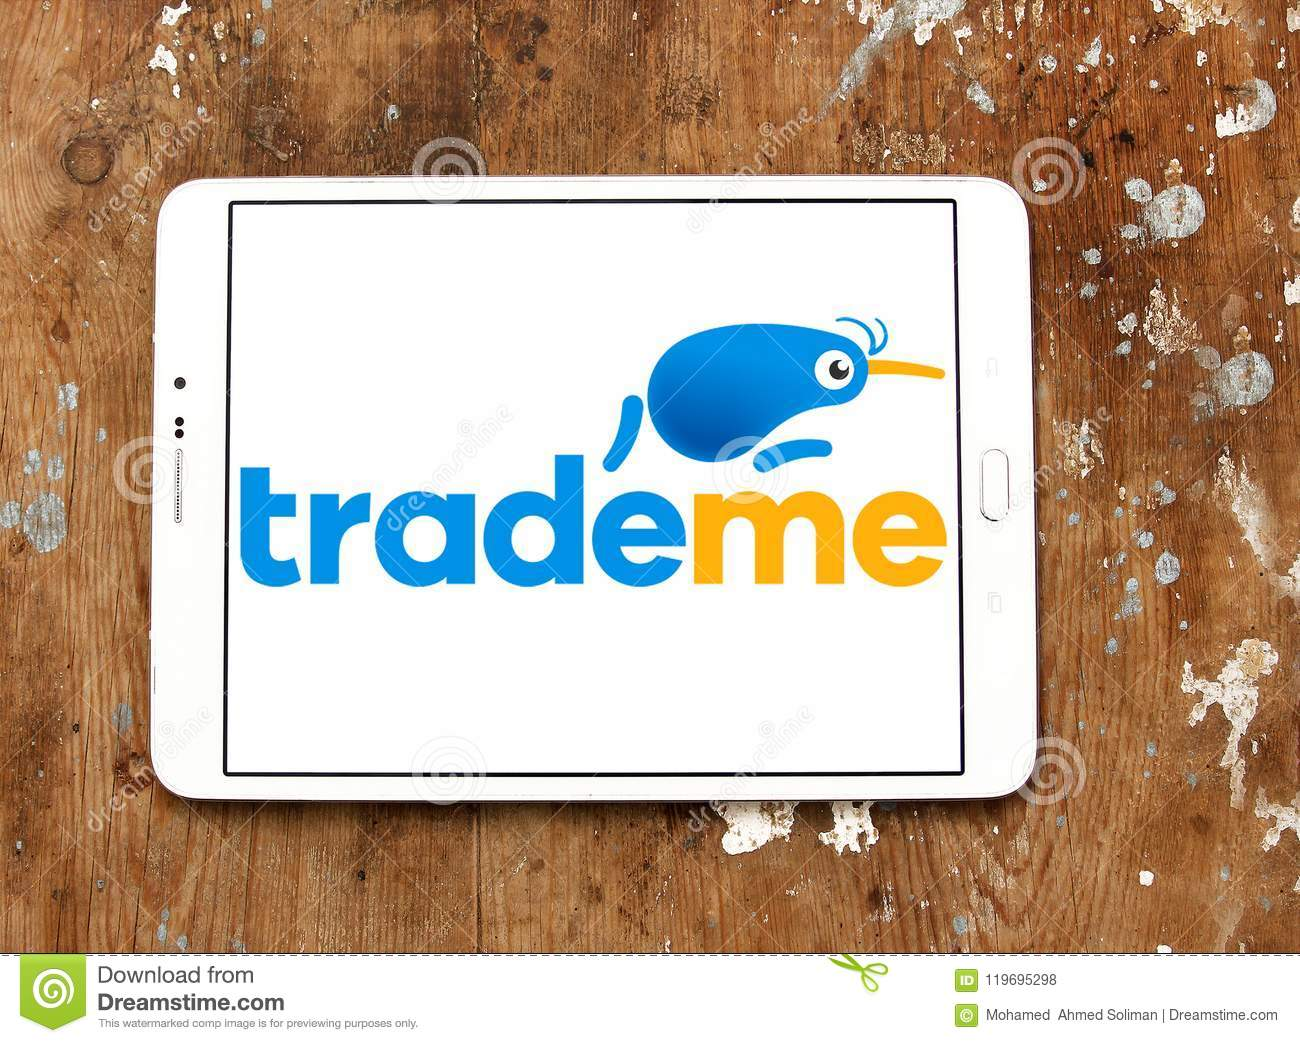 Trade Me Internet Auction Website Logo Editorial Stock Photo Image Of Brand Brands 119695298